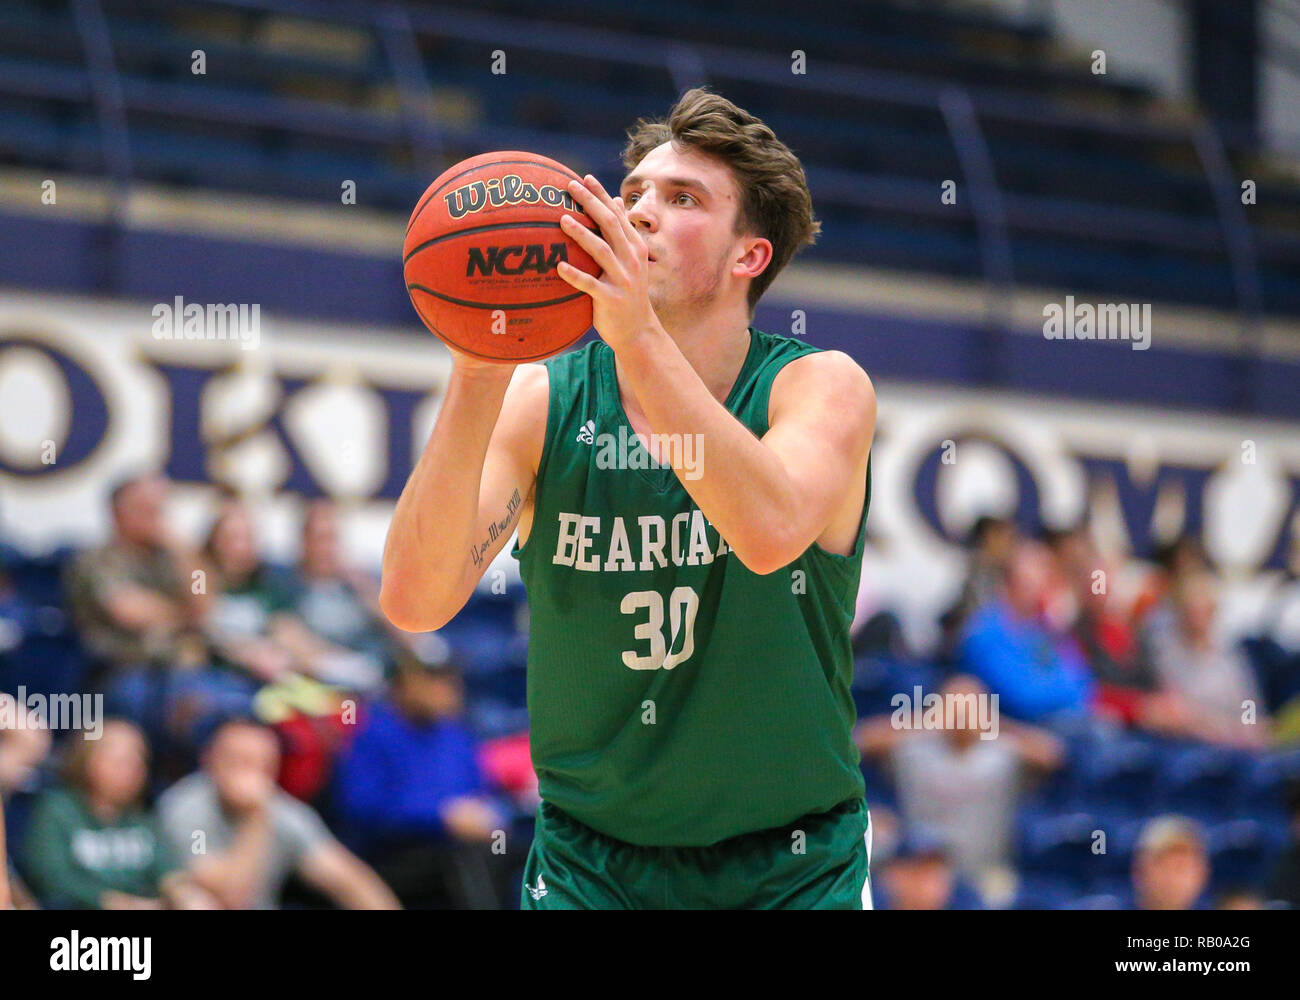 Oklahoma, USA. 5th Jan, 2019. Northwest Missouri Guard Joey Witthus (30) attempts a free throw during a basketball game between the Northwest Missouri Bearcats and the Central Oklahoma Bronchos at Hamilton Field House in Edmond, OK. Gray Siegel/CSM/Alamy Live News Stock Photo